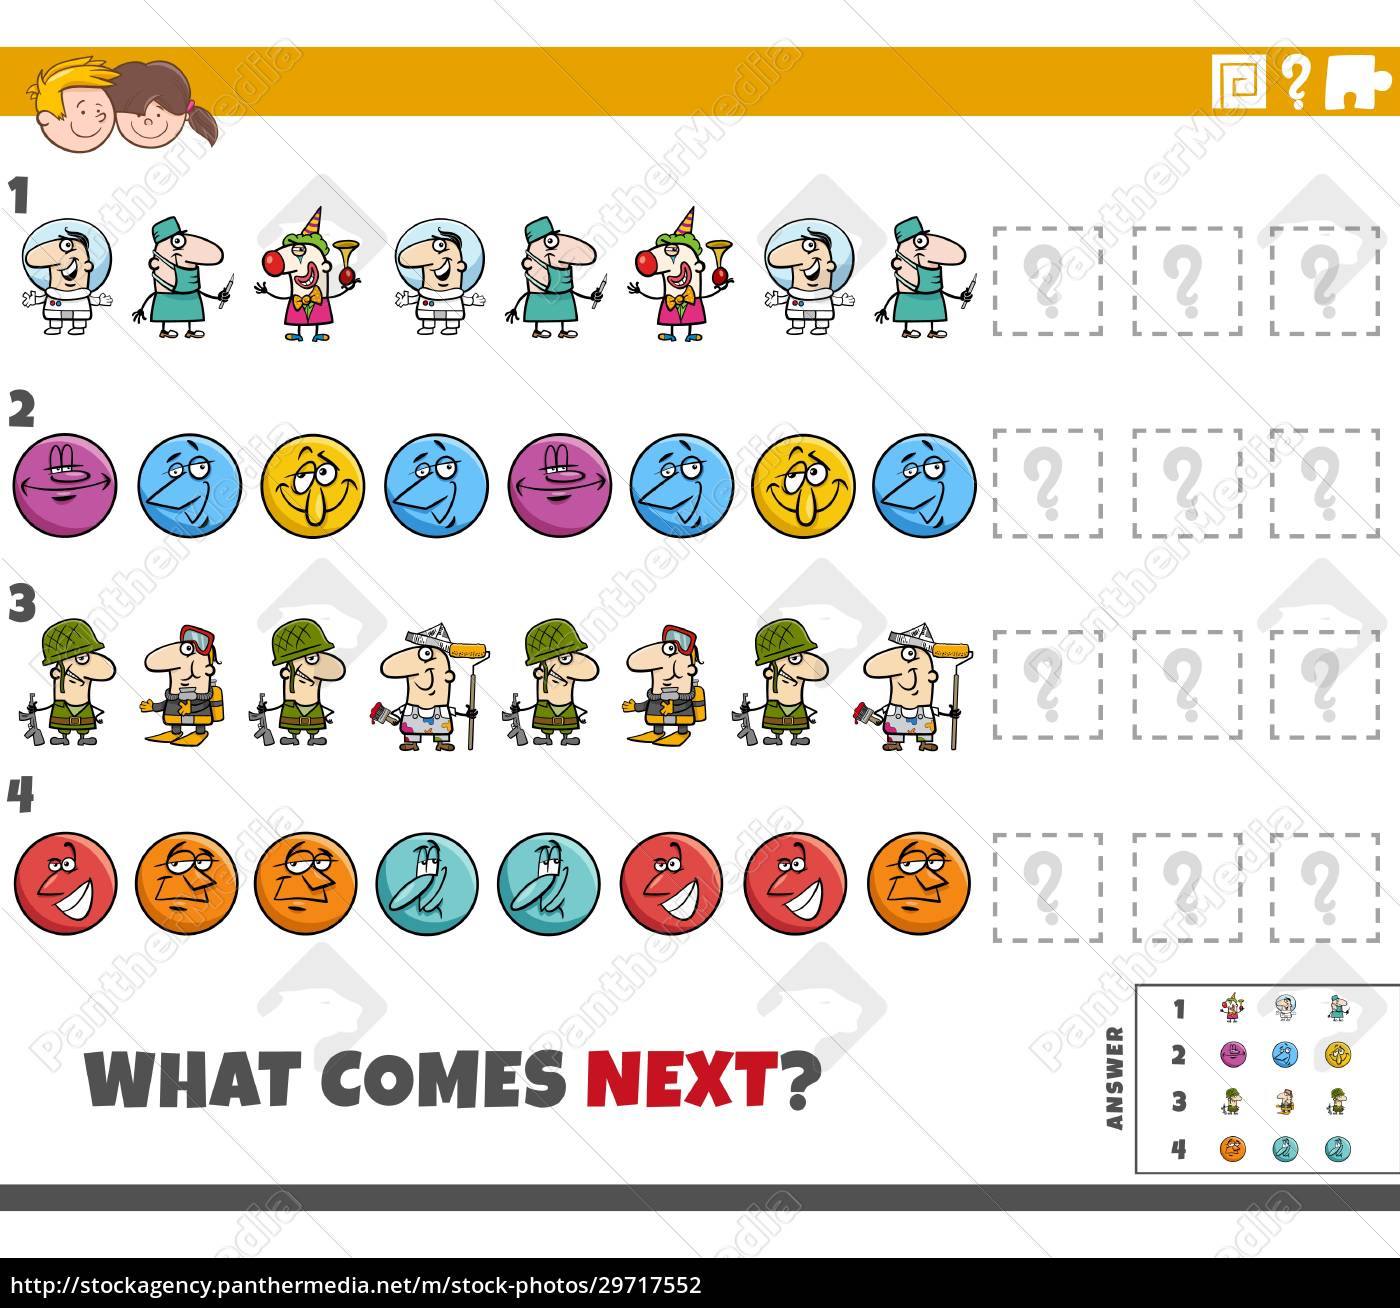 educational, pattern, game, for, children, with - 29717552